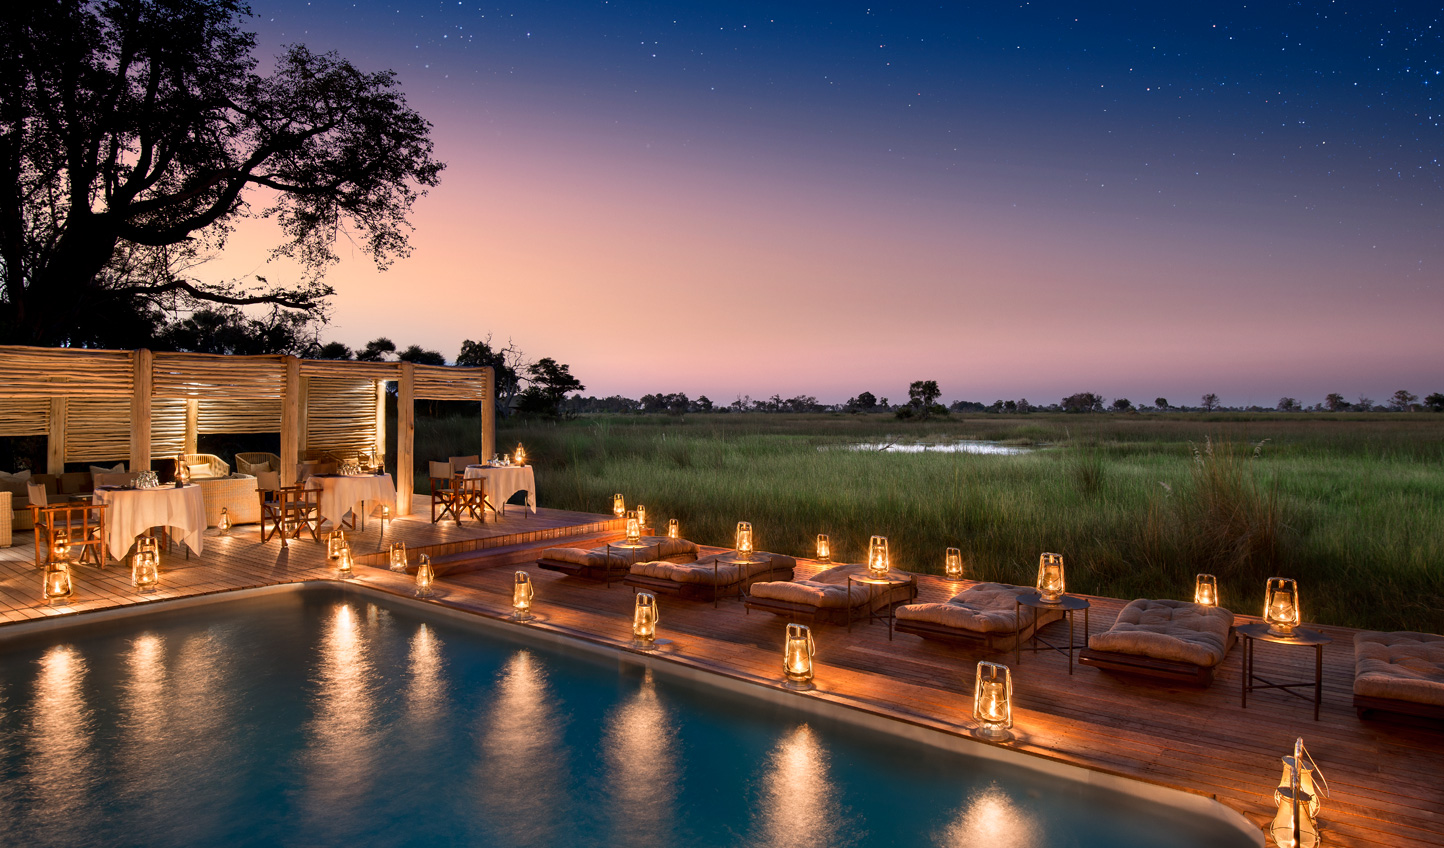 Romantic dinners make this an ideal hotel for a honeymoon